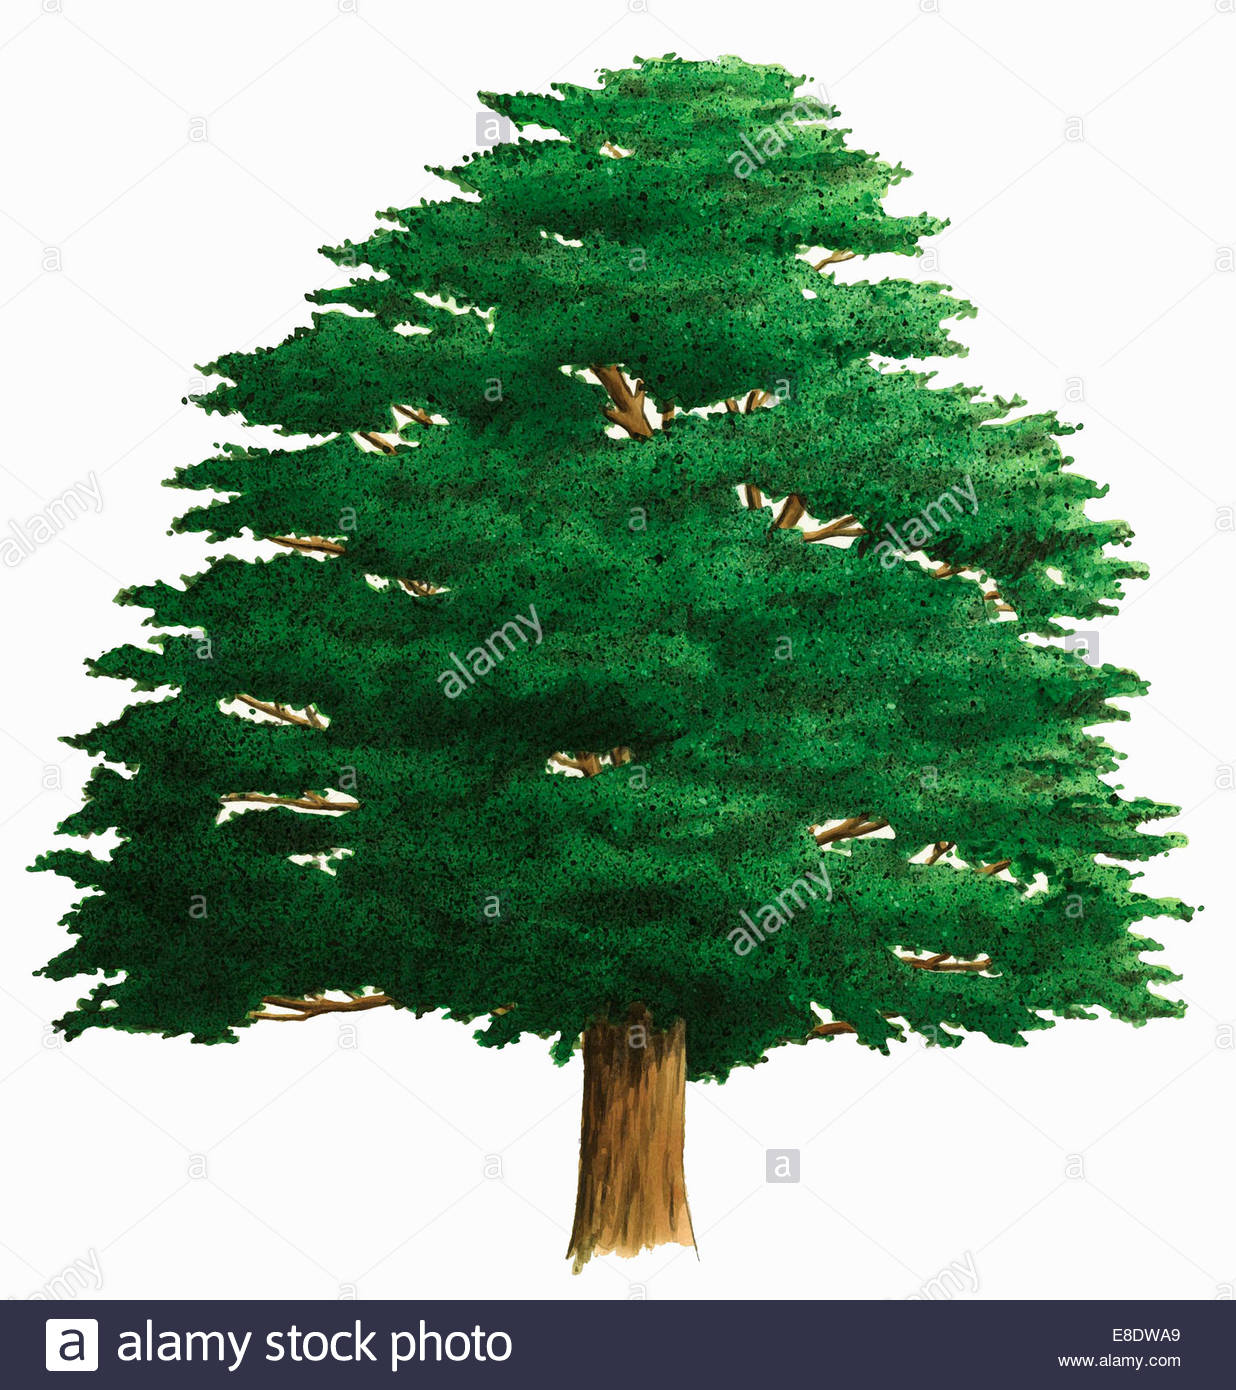 Single tree on white background, Yew (Taxus baccata) - Stock Image